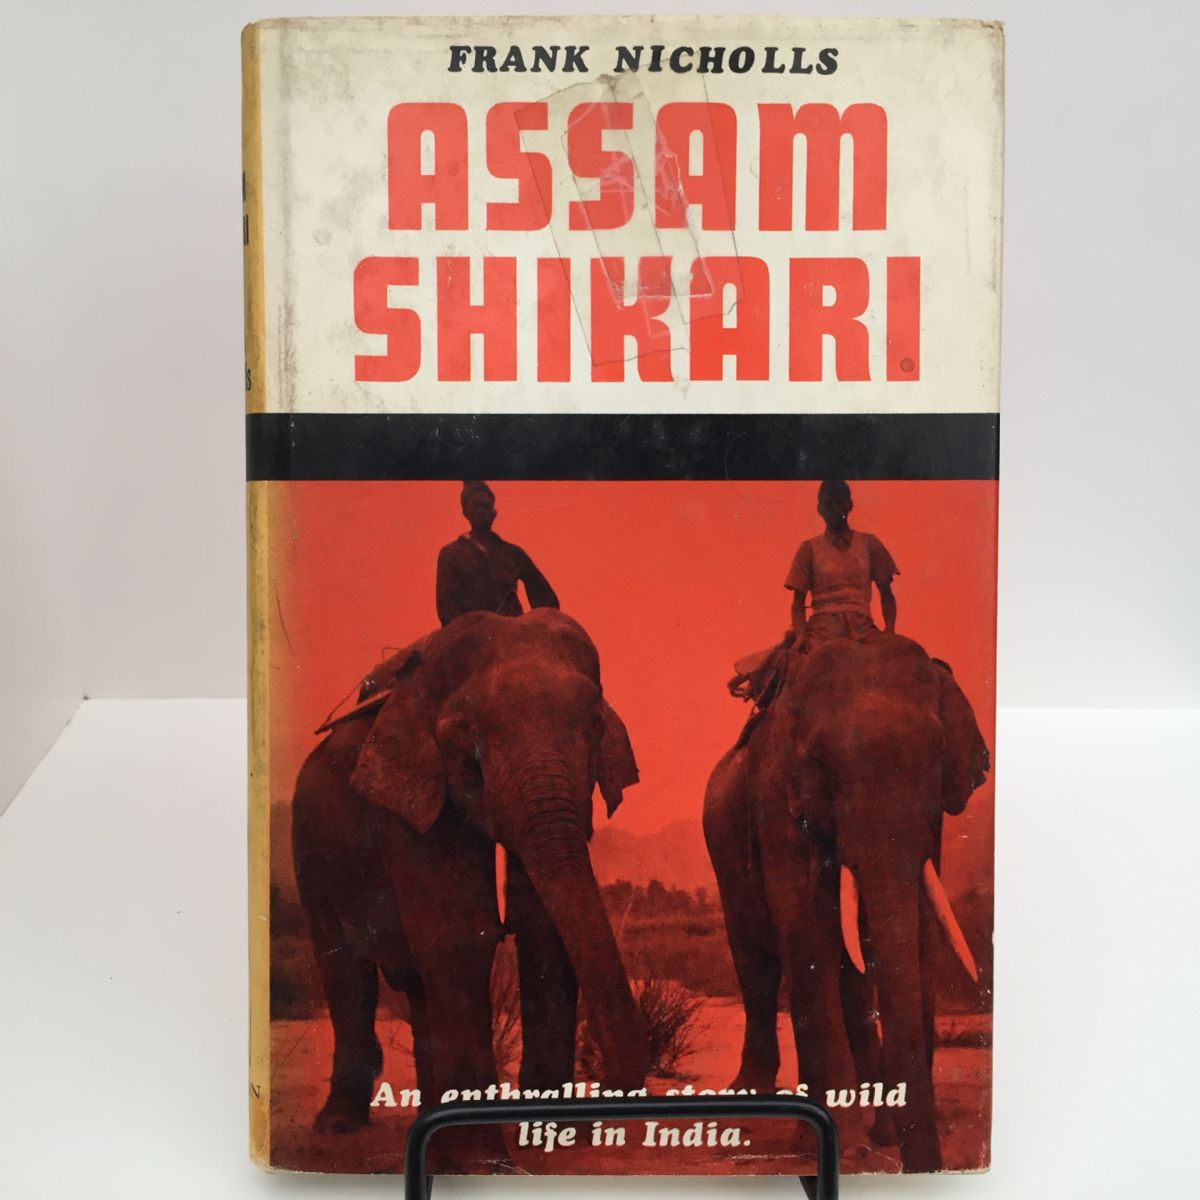 Assam Shikari : A enthralling story of wild life in India